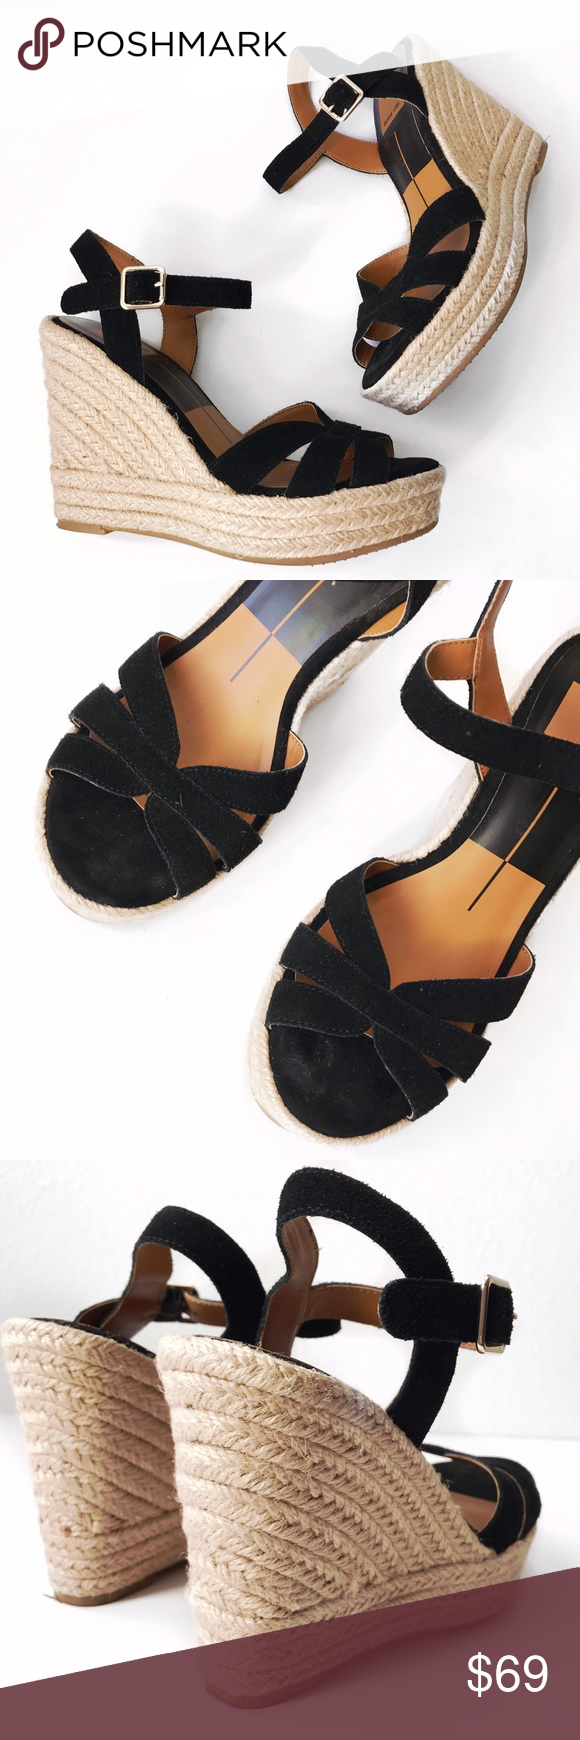 """➡Dolce Vita Black Espadrille Wedges⬅ Slender straps dials up a vacation-style espadrille that's lifted on a woven jute platform wedge. - Open toe.  - Multi vamp straps.  - Ankle strap with buckle closure. - Braided jute wrapped wedge heel and platform.  - Approx. 4.5"""" heel, 1.5"""" platform. Worn very briefly for a shoot, like new.  💕Offers welcome. Take 30% off your entire purchase automatically at checkout when you use the bundle feature, or make an offer for your bundle. Happy Poshing!💕…"""